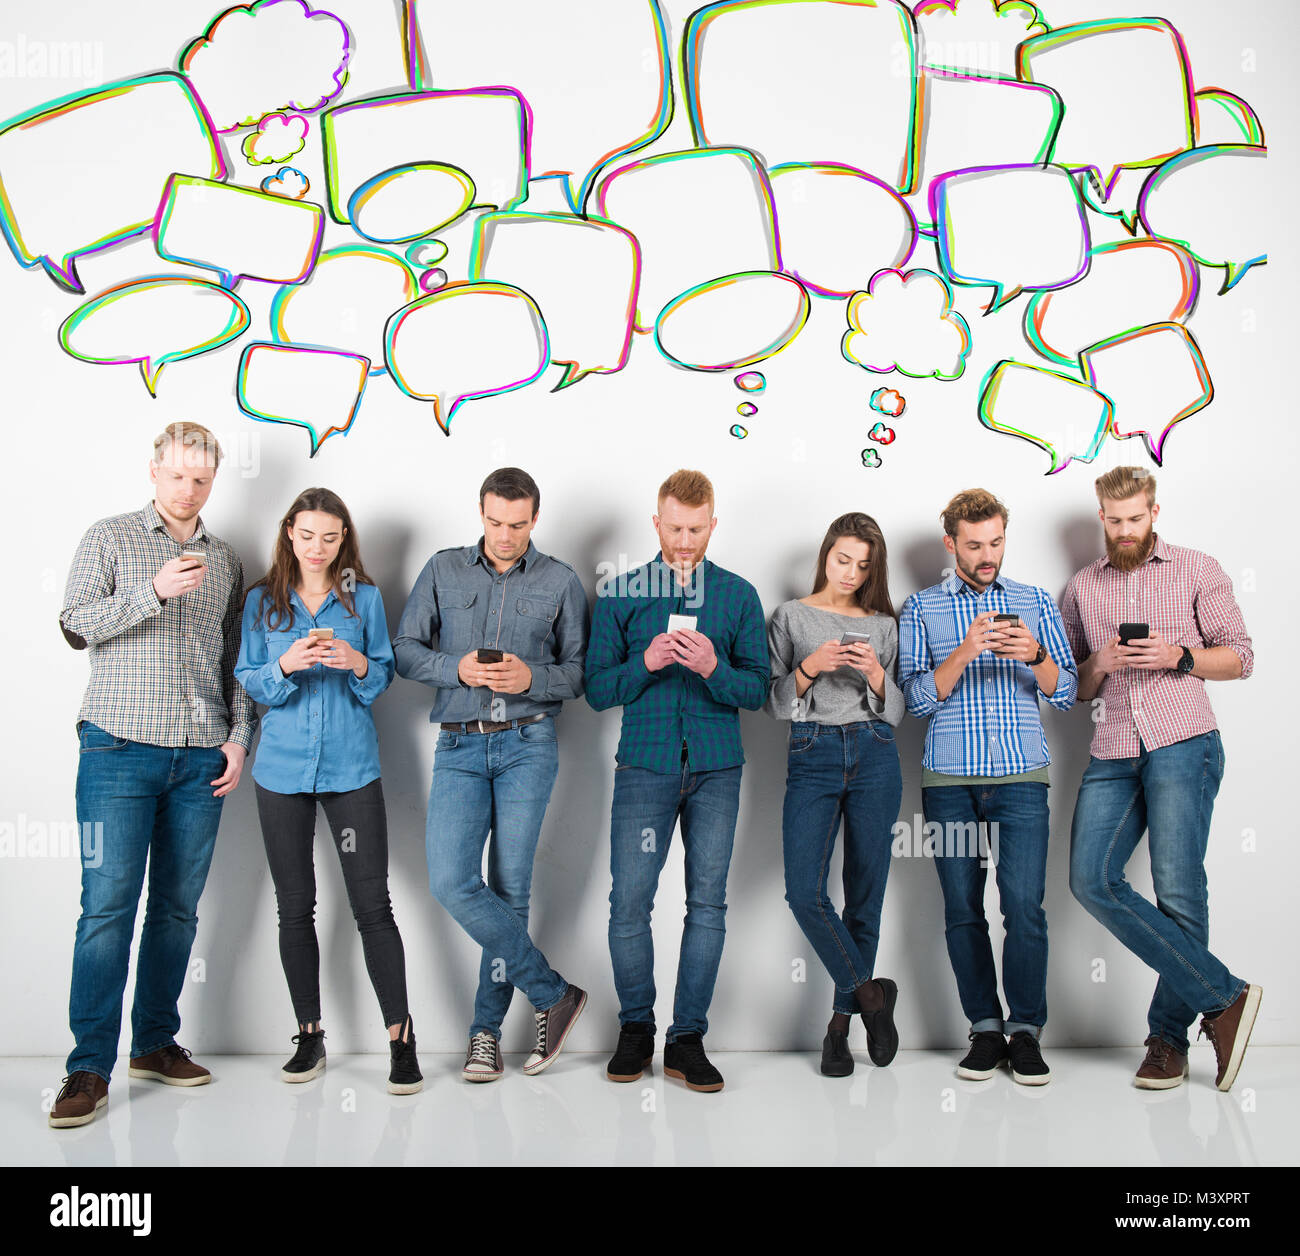 Group of boys and girls connected with their smartphones. Concept of internet and social network - Stock Image